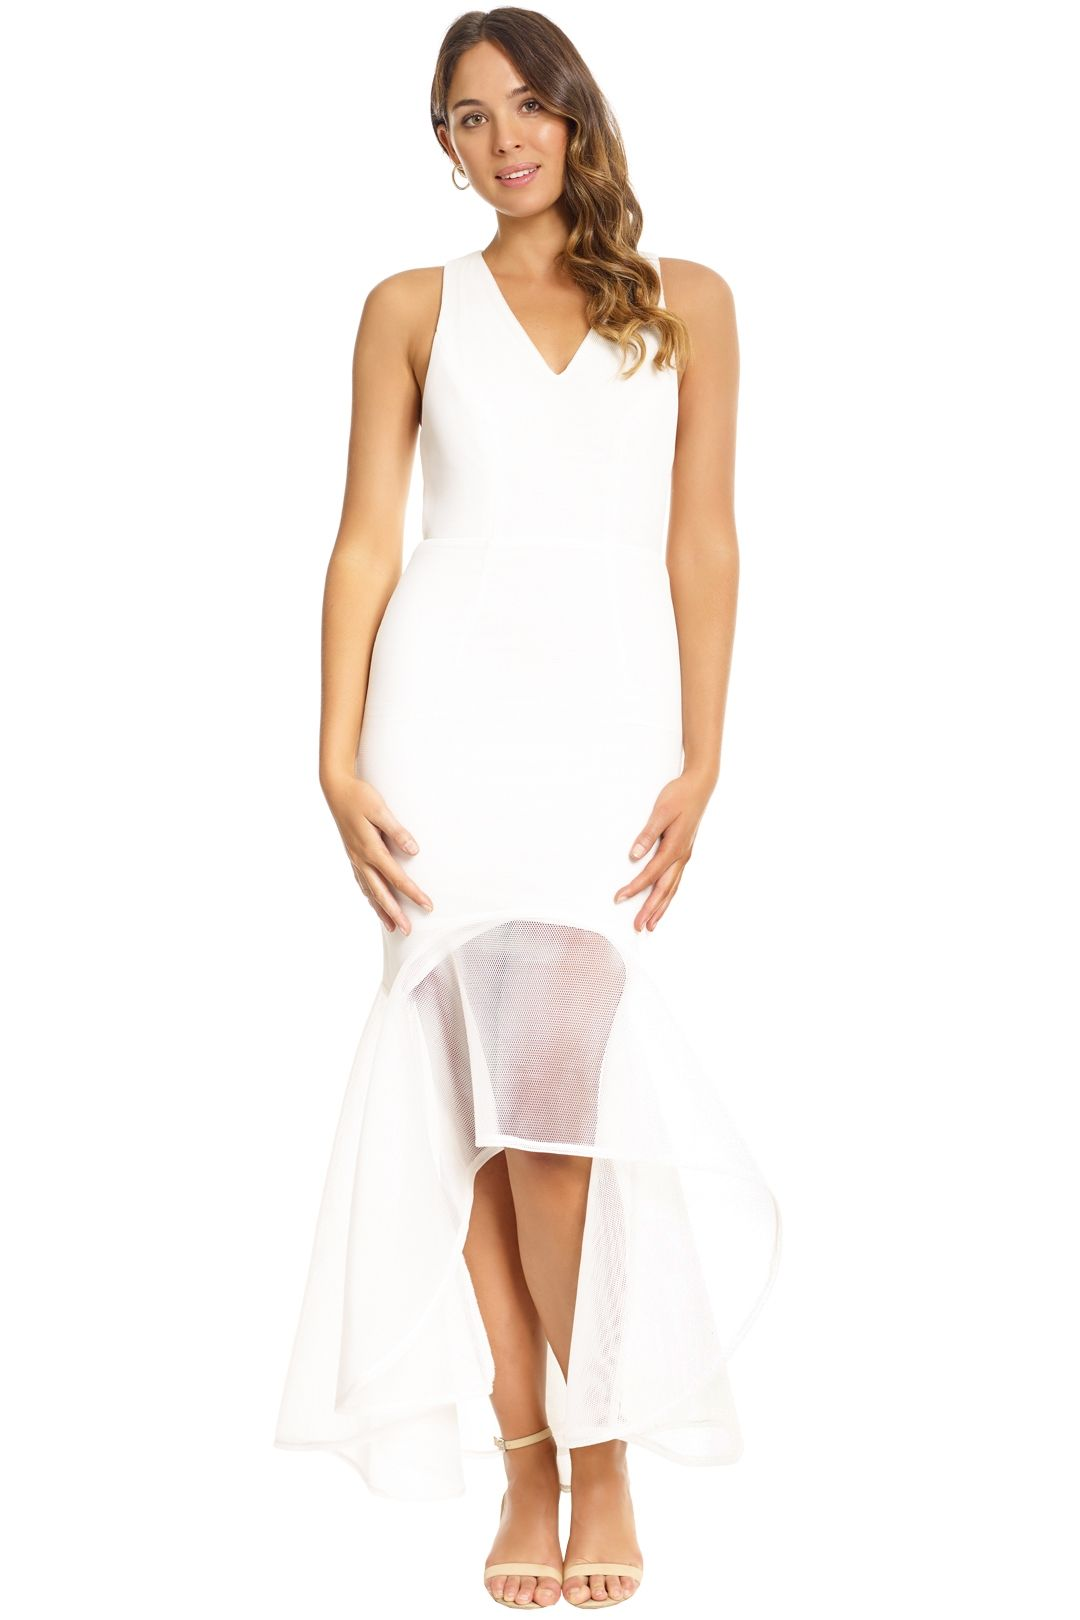 Grace & Hart - Cherry on Top Gown - White - Front